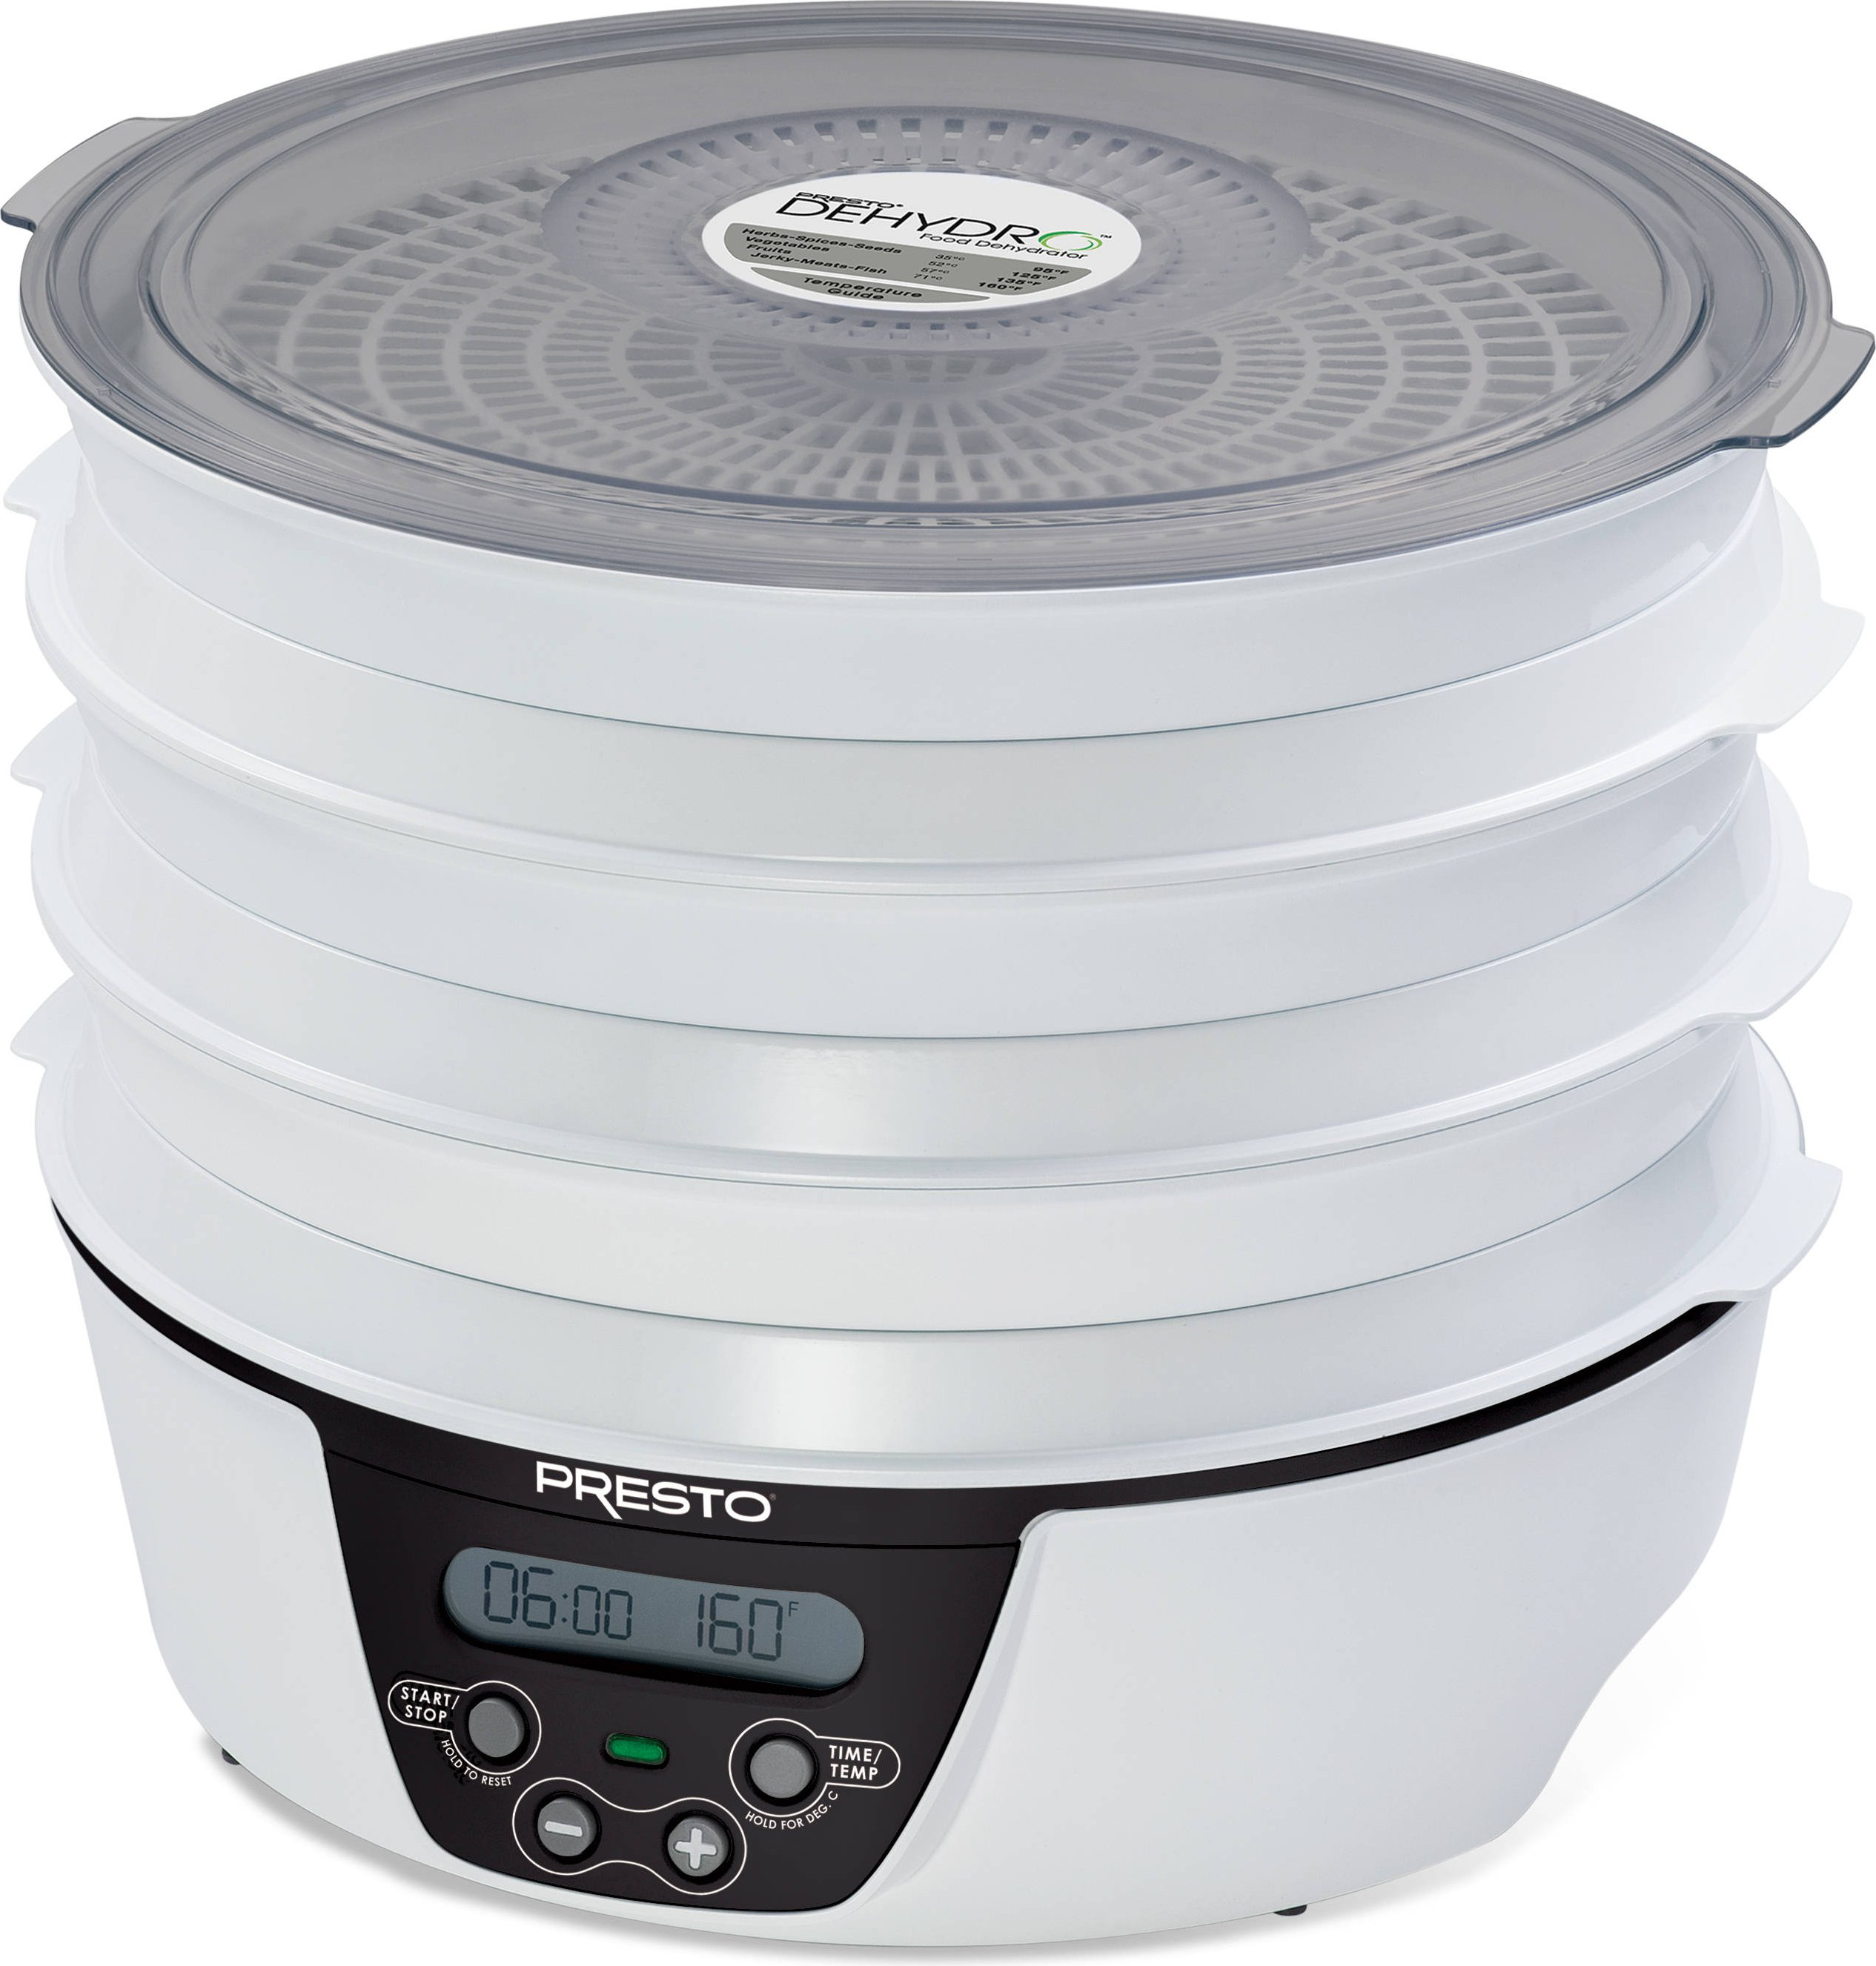 Food Dehydrator Appliance Control